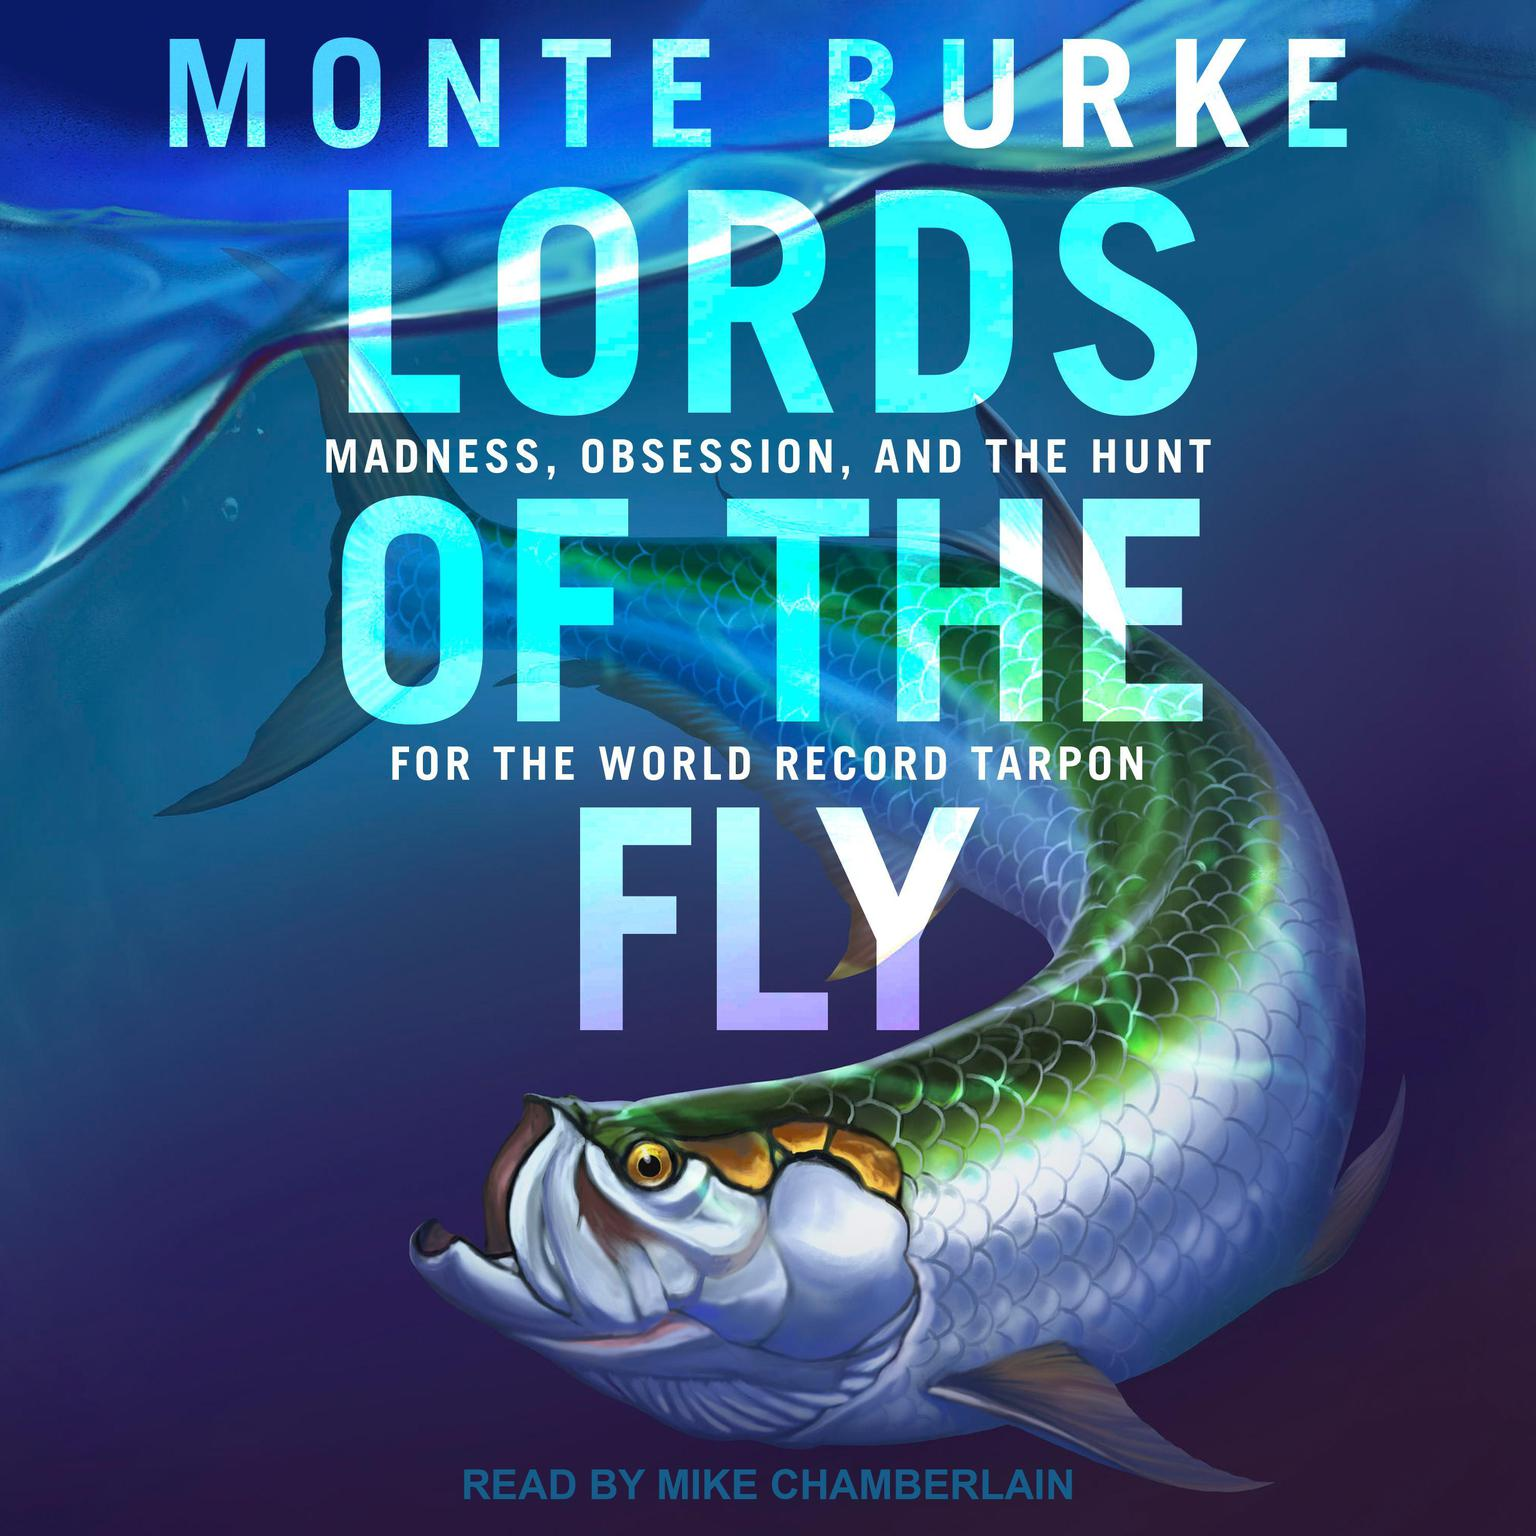 Lords of the Fly: Madness, Obsession, and the Hunt for the World Record Tarpon Audiobook, by Monte Burke